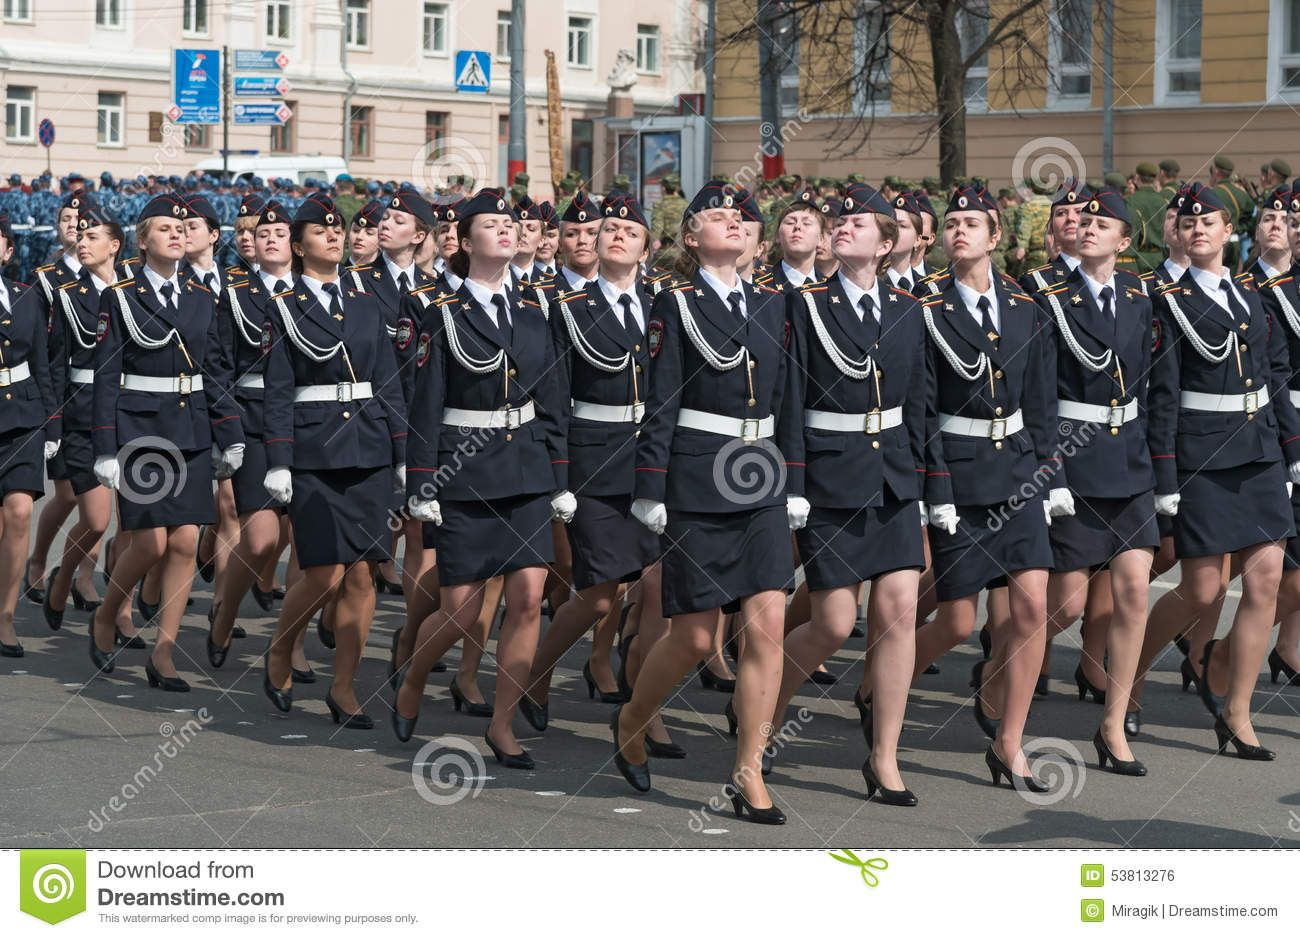 women-soldiers-uniform-rehearsal-military-parade-nizhny-novgorod-russia-may-commemorating-th-anniversary-victory-53813276.jpg (1300×938)